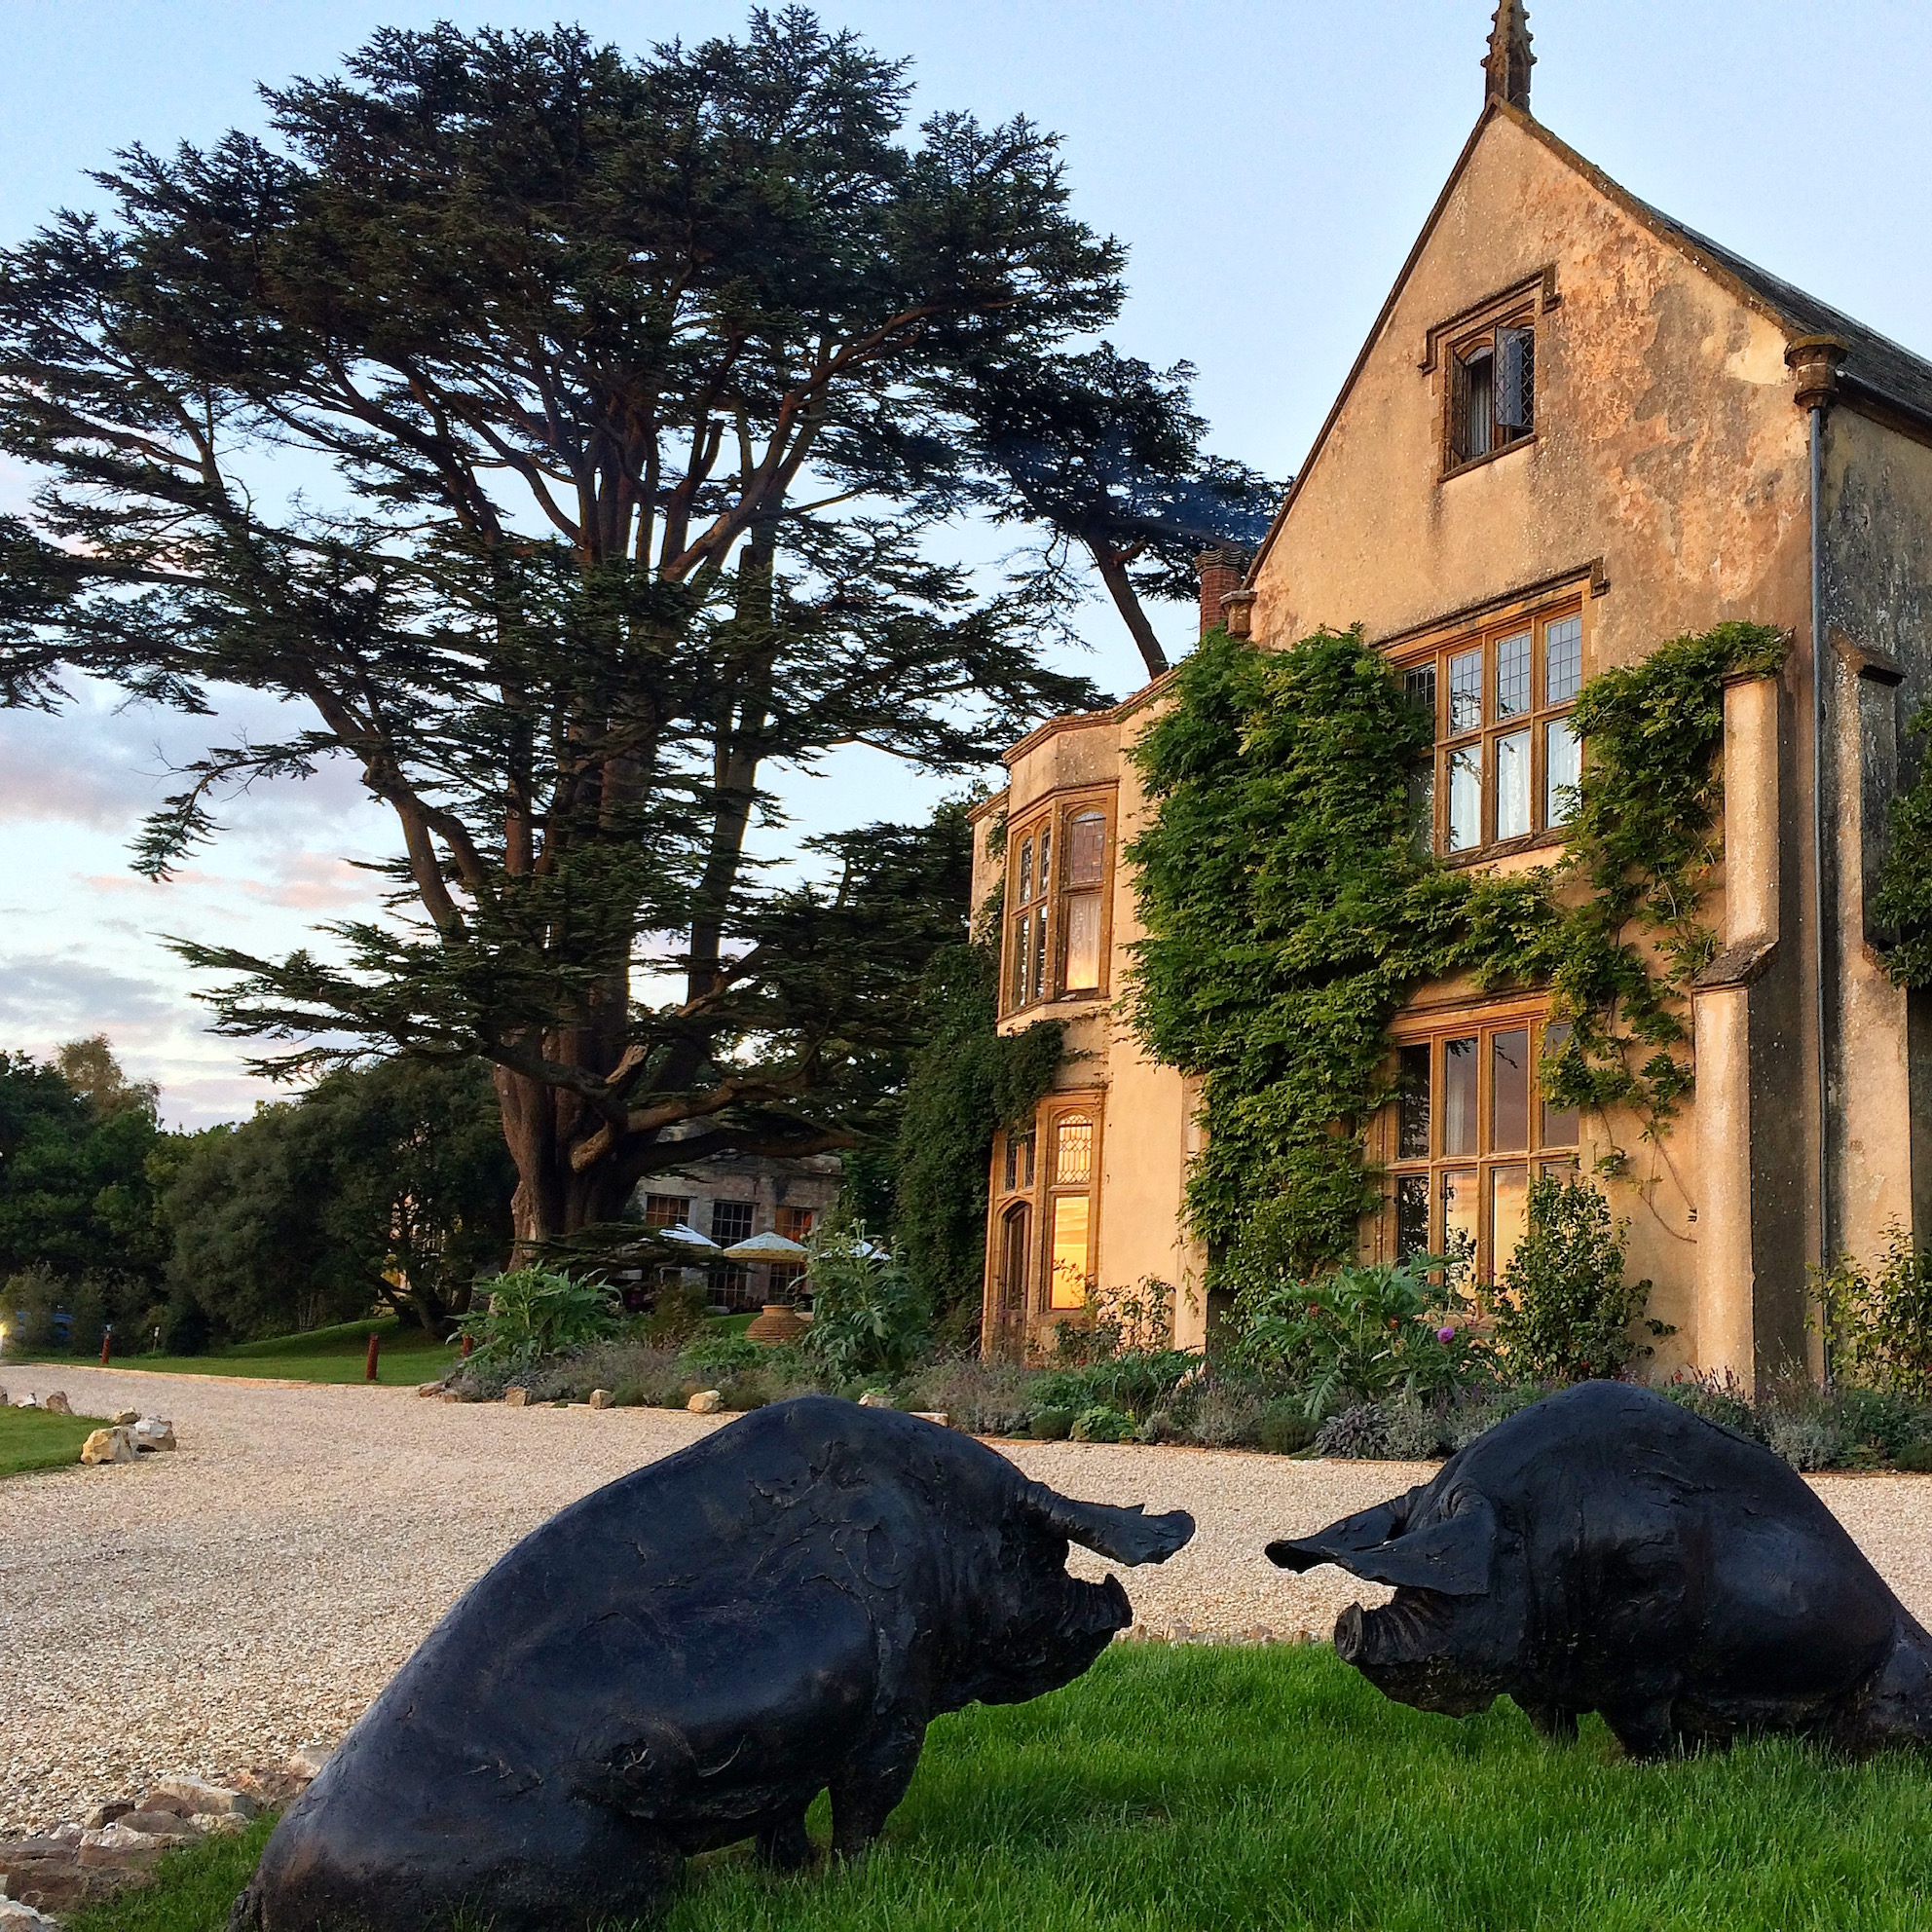 The Pig at Combe hotel and restaurant review